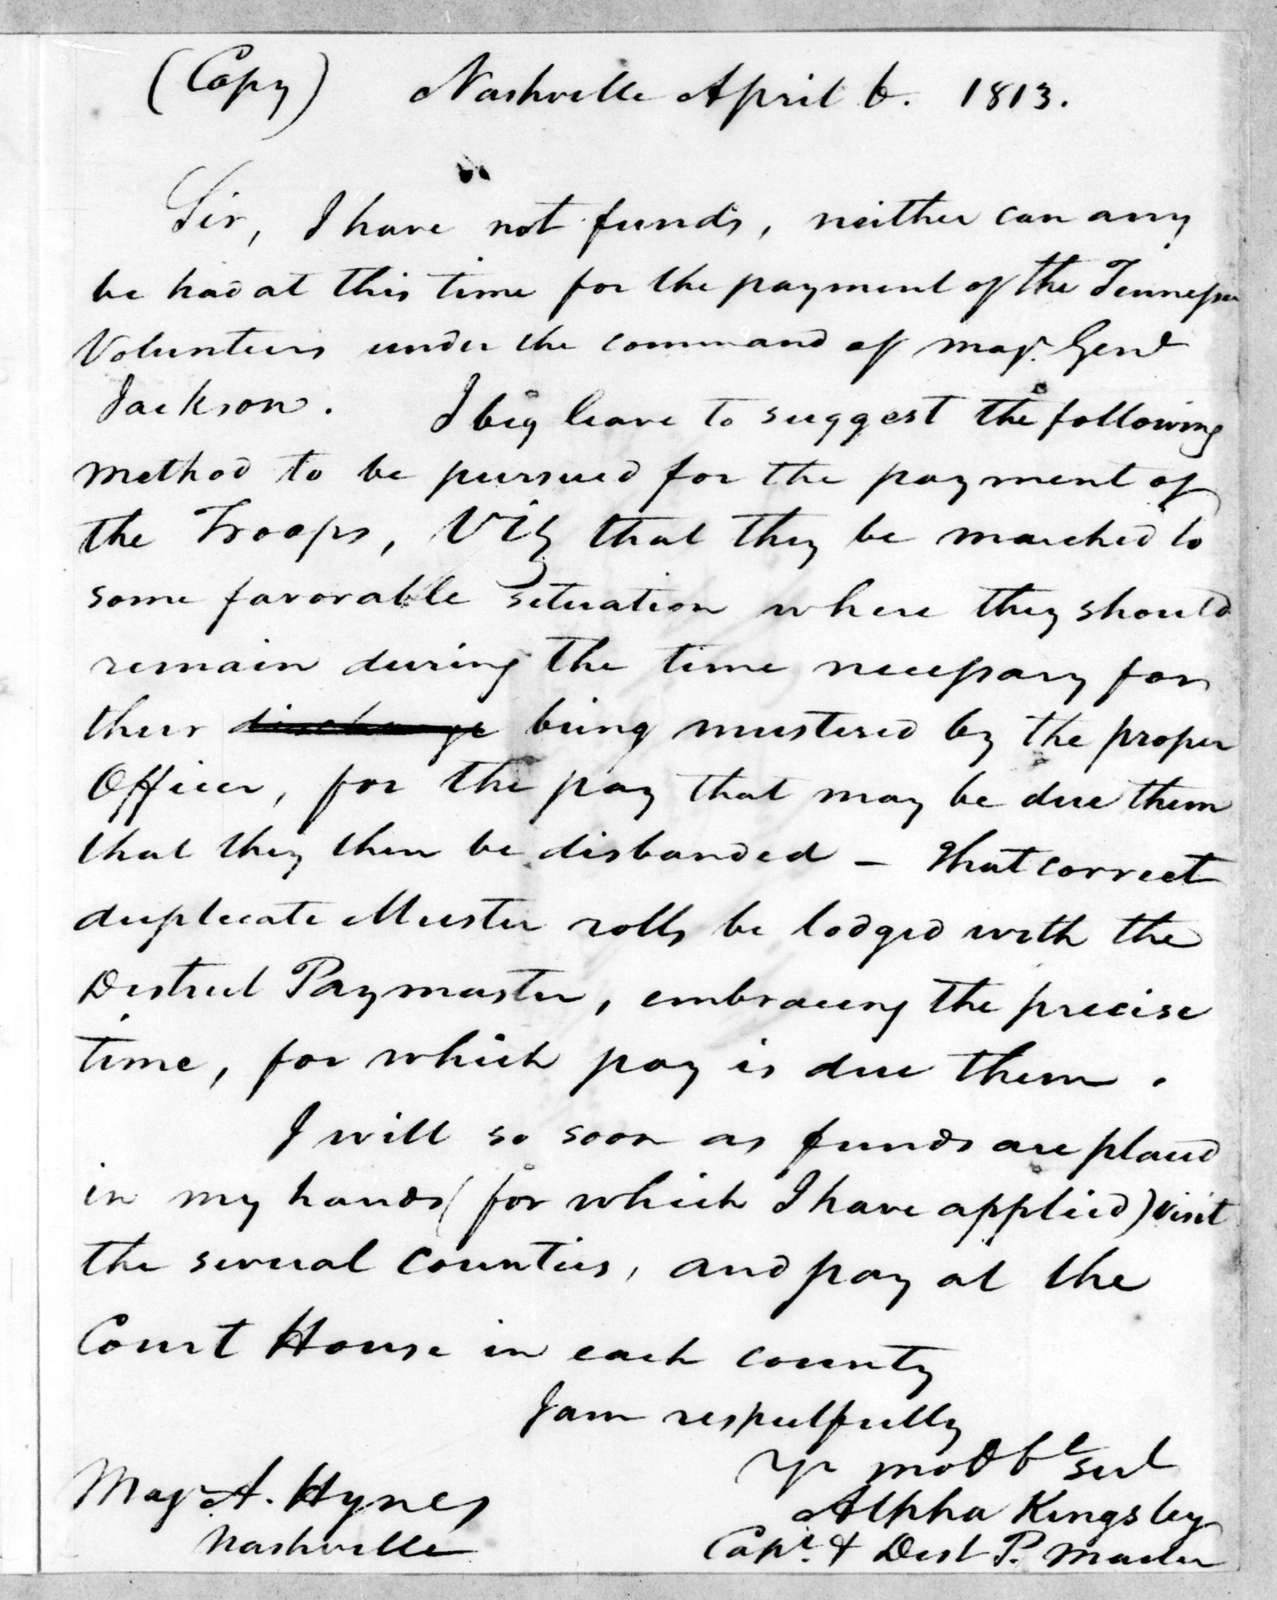 Alpha Kingsley to Andrew Hynes, April 6, 1813